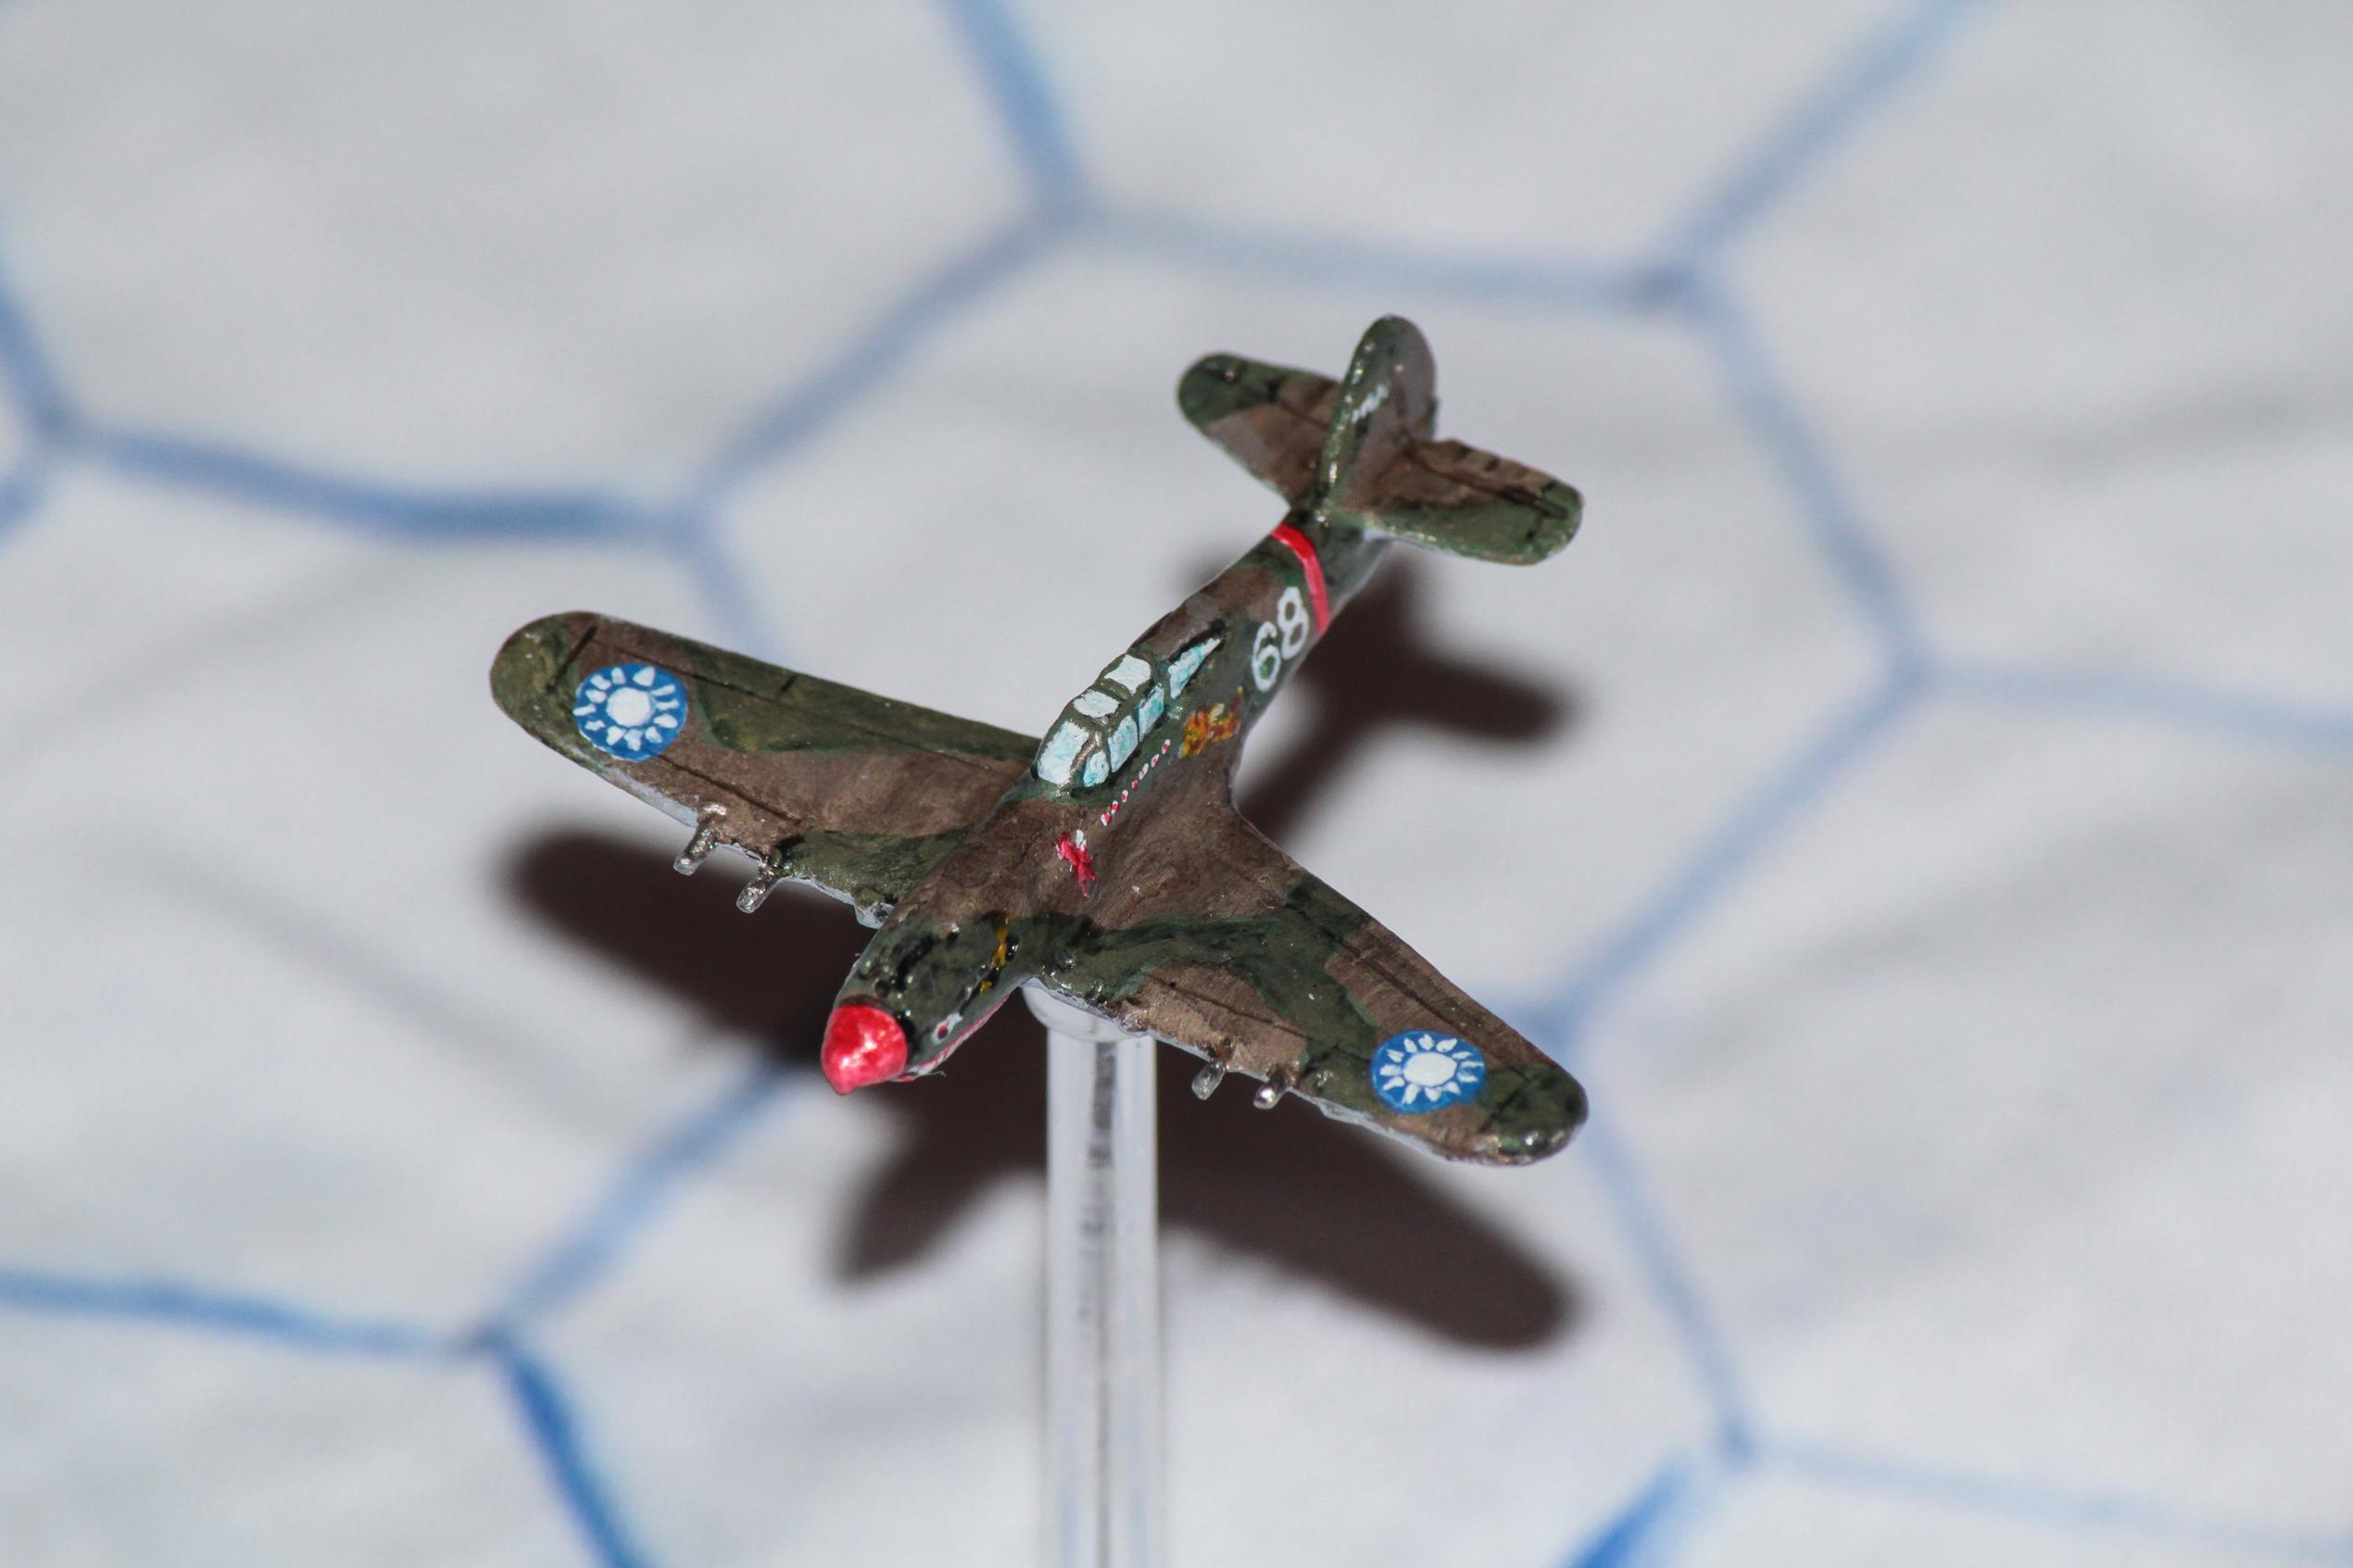 1:300 Scale, 6mm Scale, Air Combat, China, Fighter, Finland, French, Germans, Imperial Japan, Italian, Luftwaffe, Raf, Republic Of China, Soviet, Usaaf, World War 2